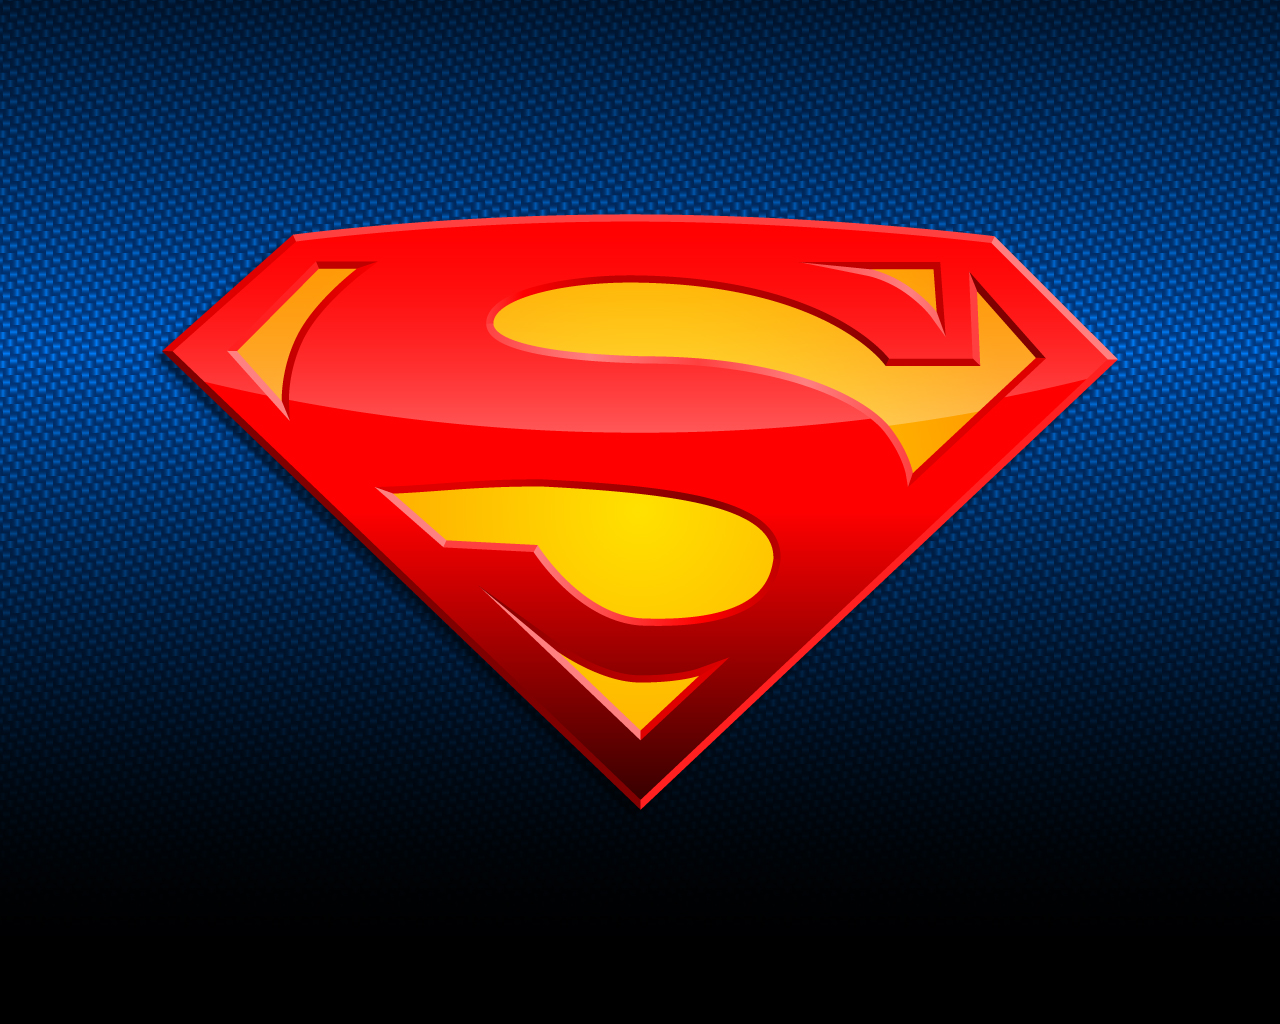 Superman Wallpaper 1280x1024 Superman 1280x1024